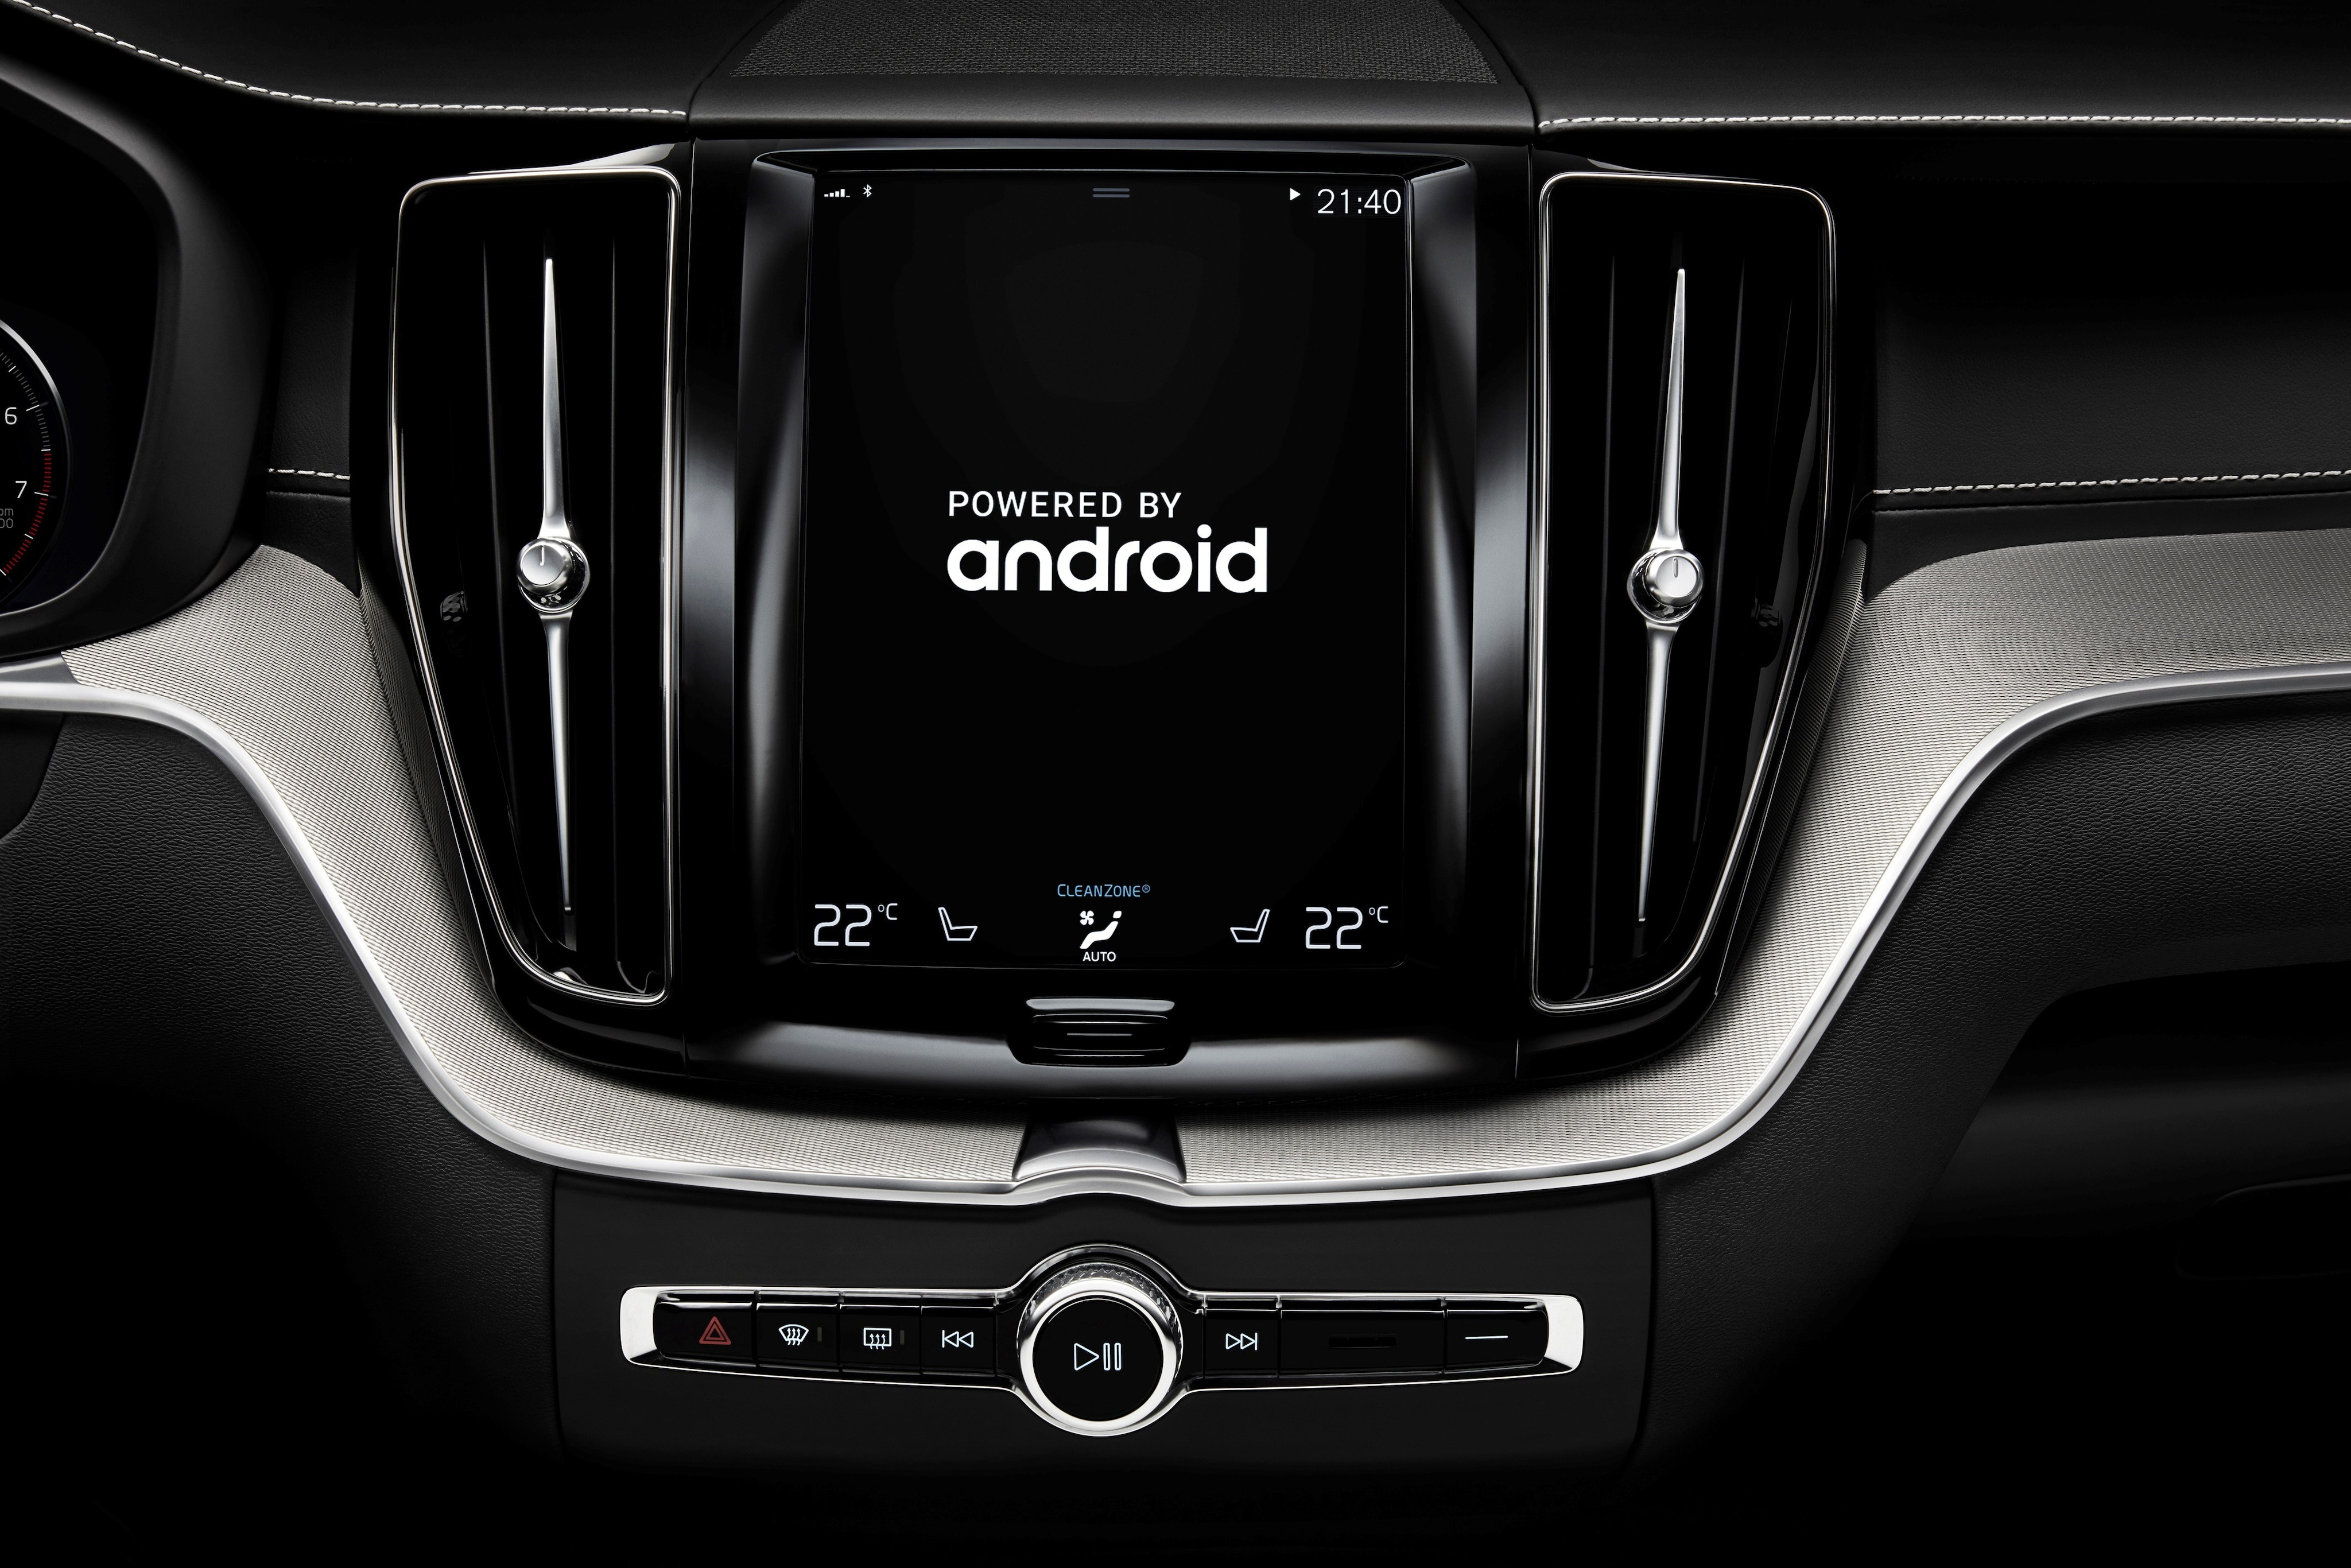 Volvo Android infotainment system